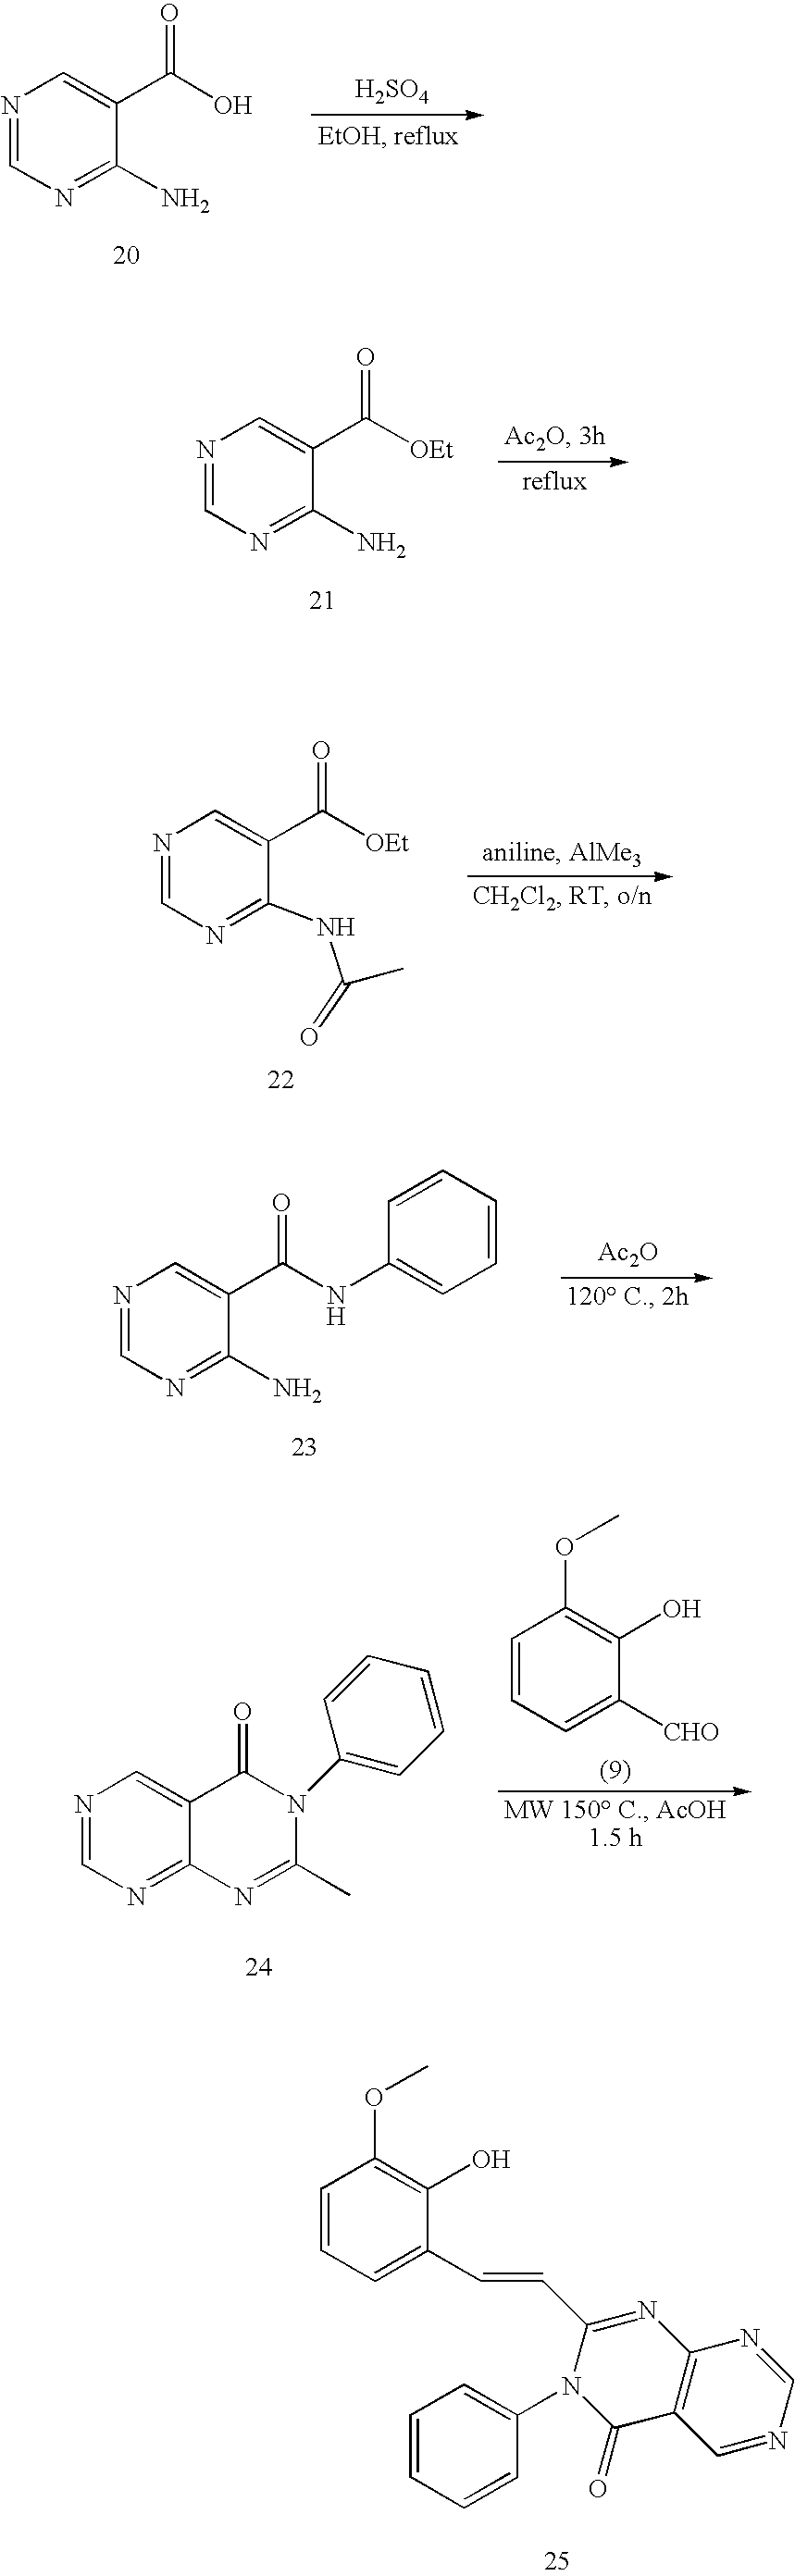 Us20070179164a1 Compounds For Modulating Trpv3 Function Google Hydra Biology Diagram Phenomenon Of Science Chap 1 Figure 20070802 C00041